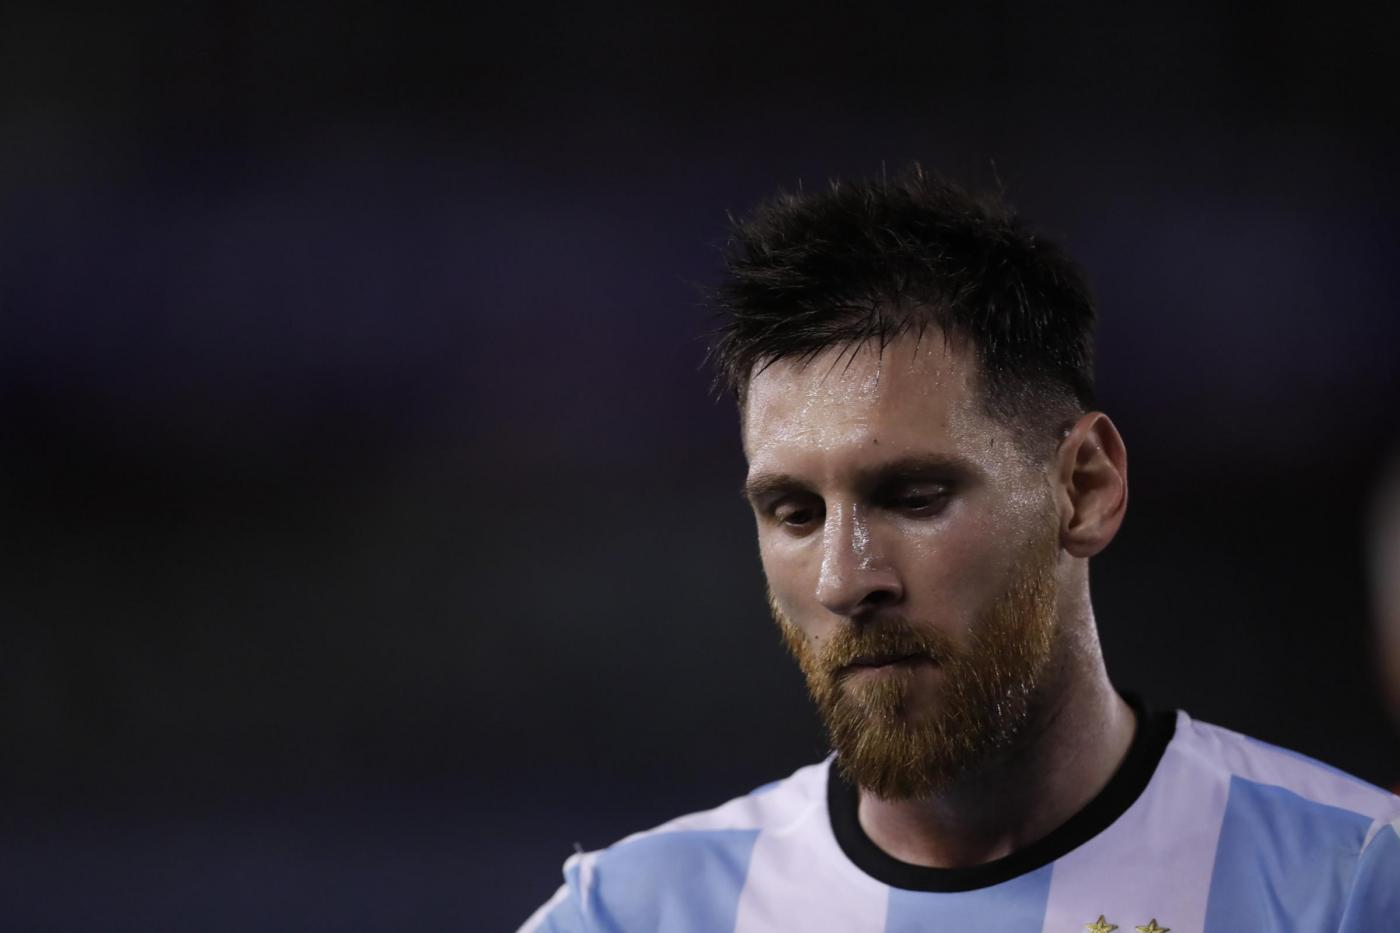 4 giornate a Messi, Maradona interviene